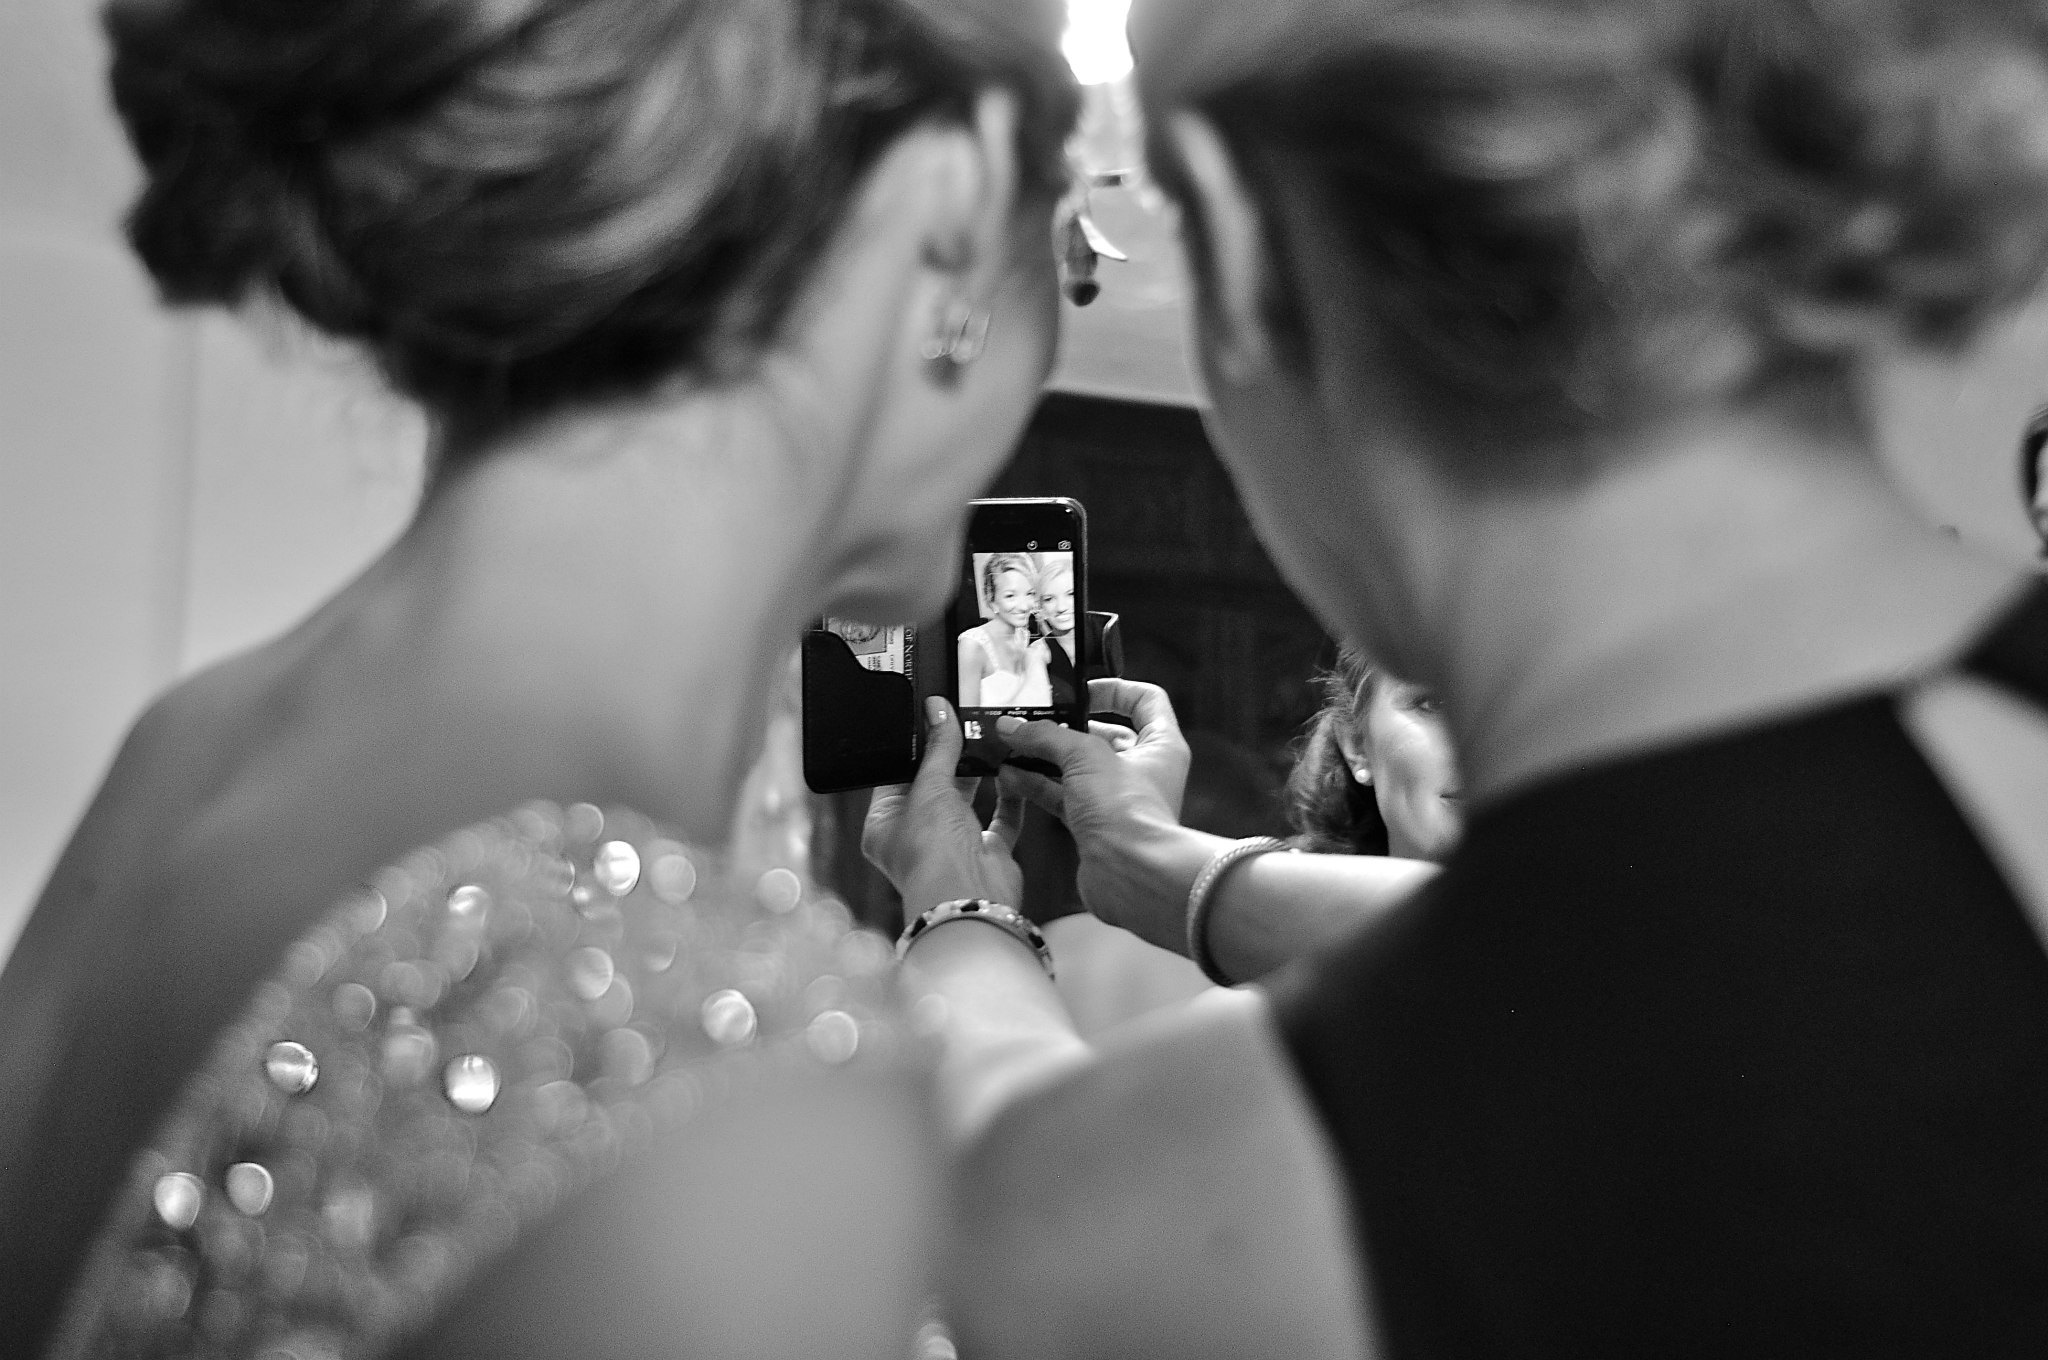 wedding-day-selfie-bride-and-maid-of-honor-cute-photo-ideas